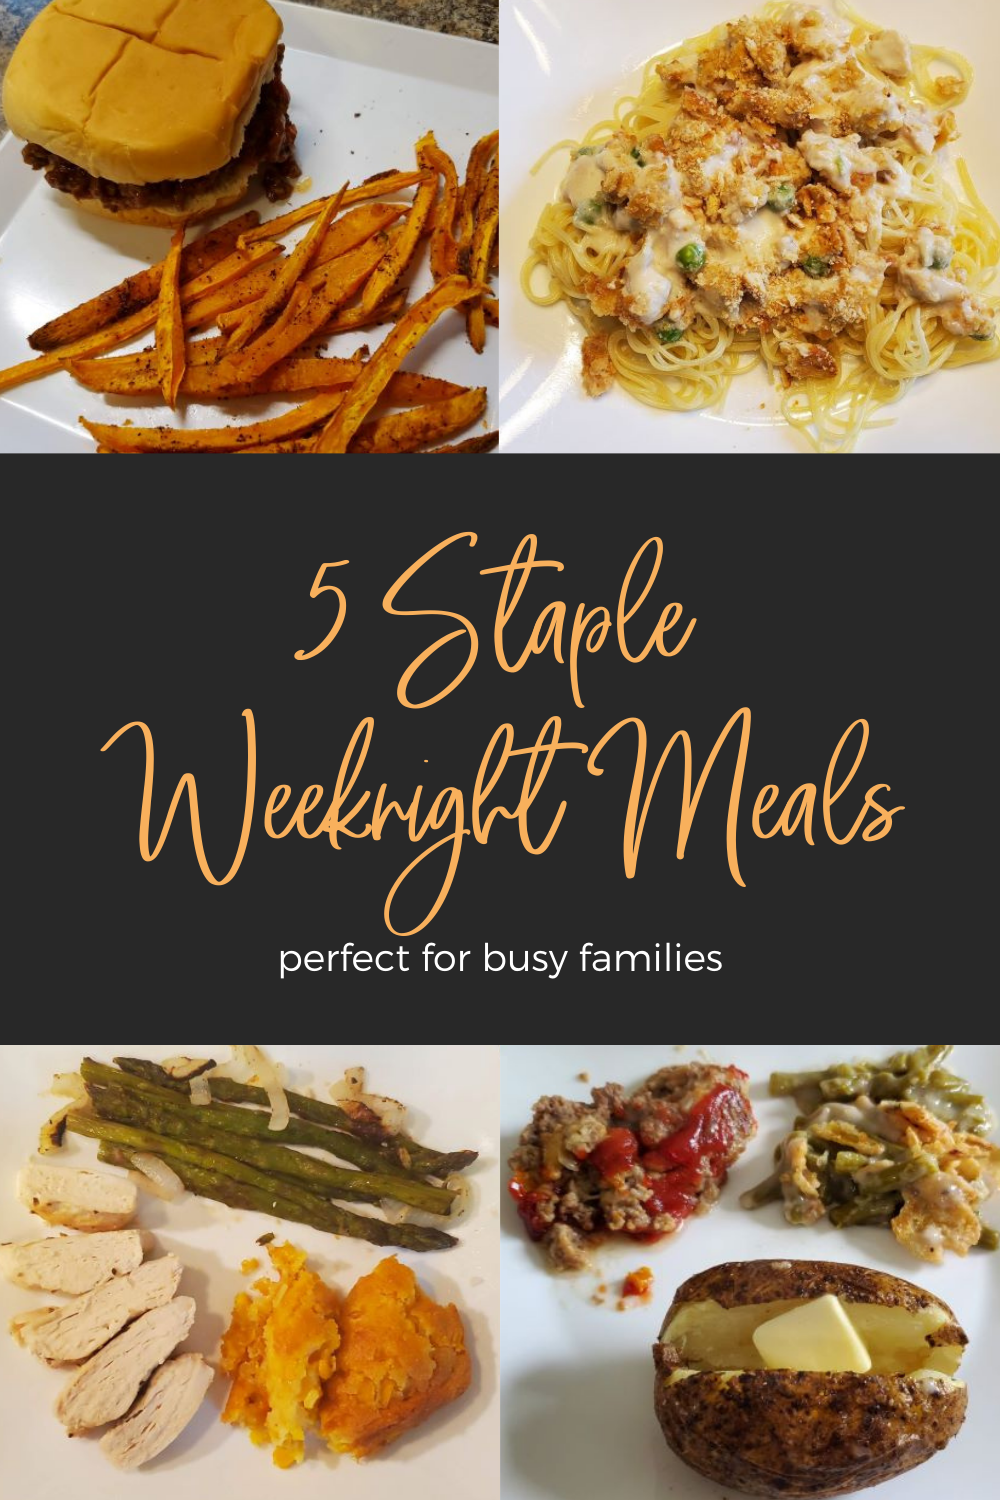 5 Staple Weeknight Meals Our Family Relies On